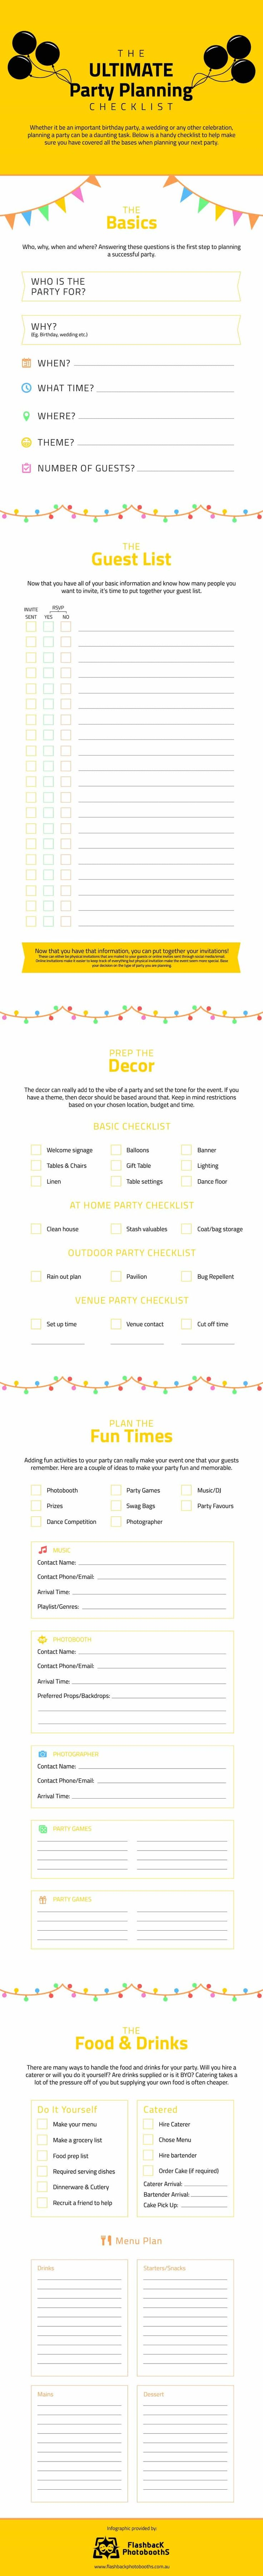 Ultimate Party Planning Checklist Infographic  Our party planning checklist will guide you through planning the perfect celebration!